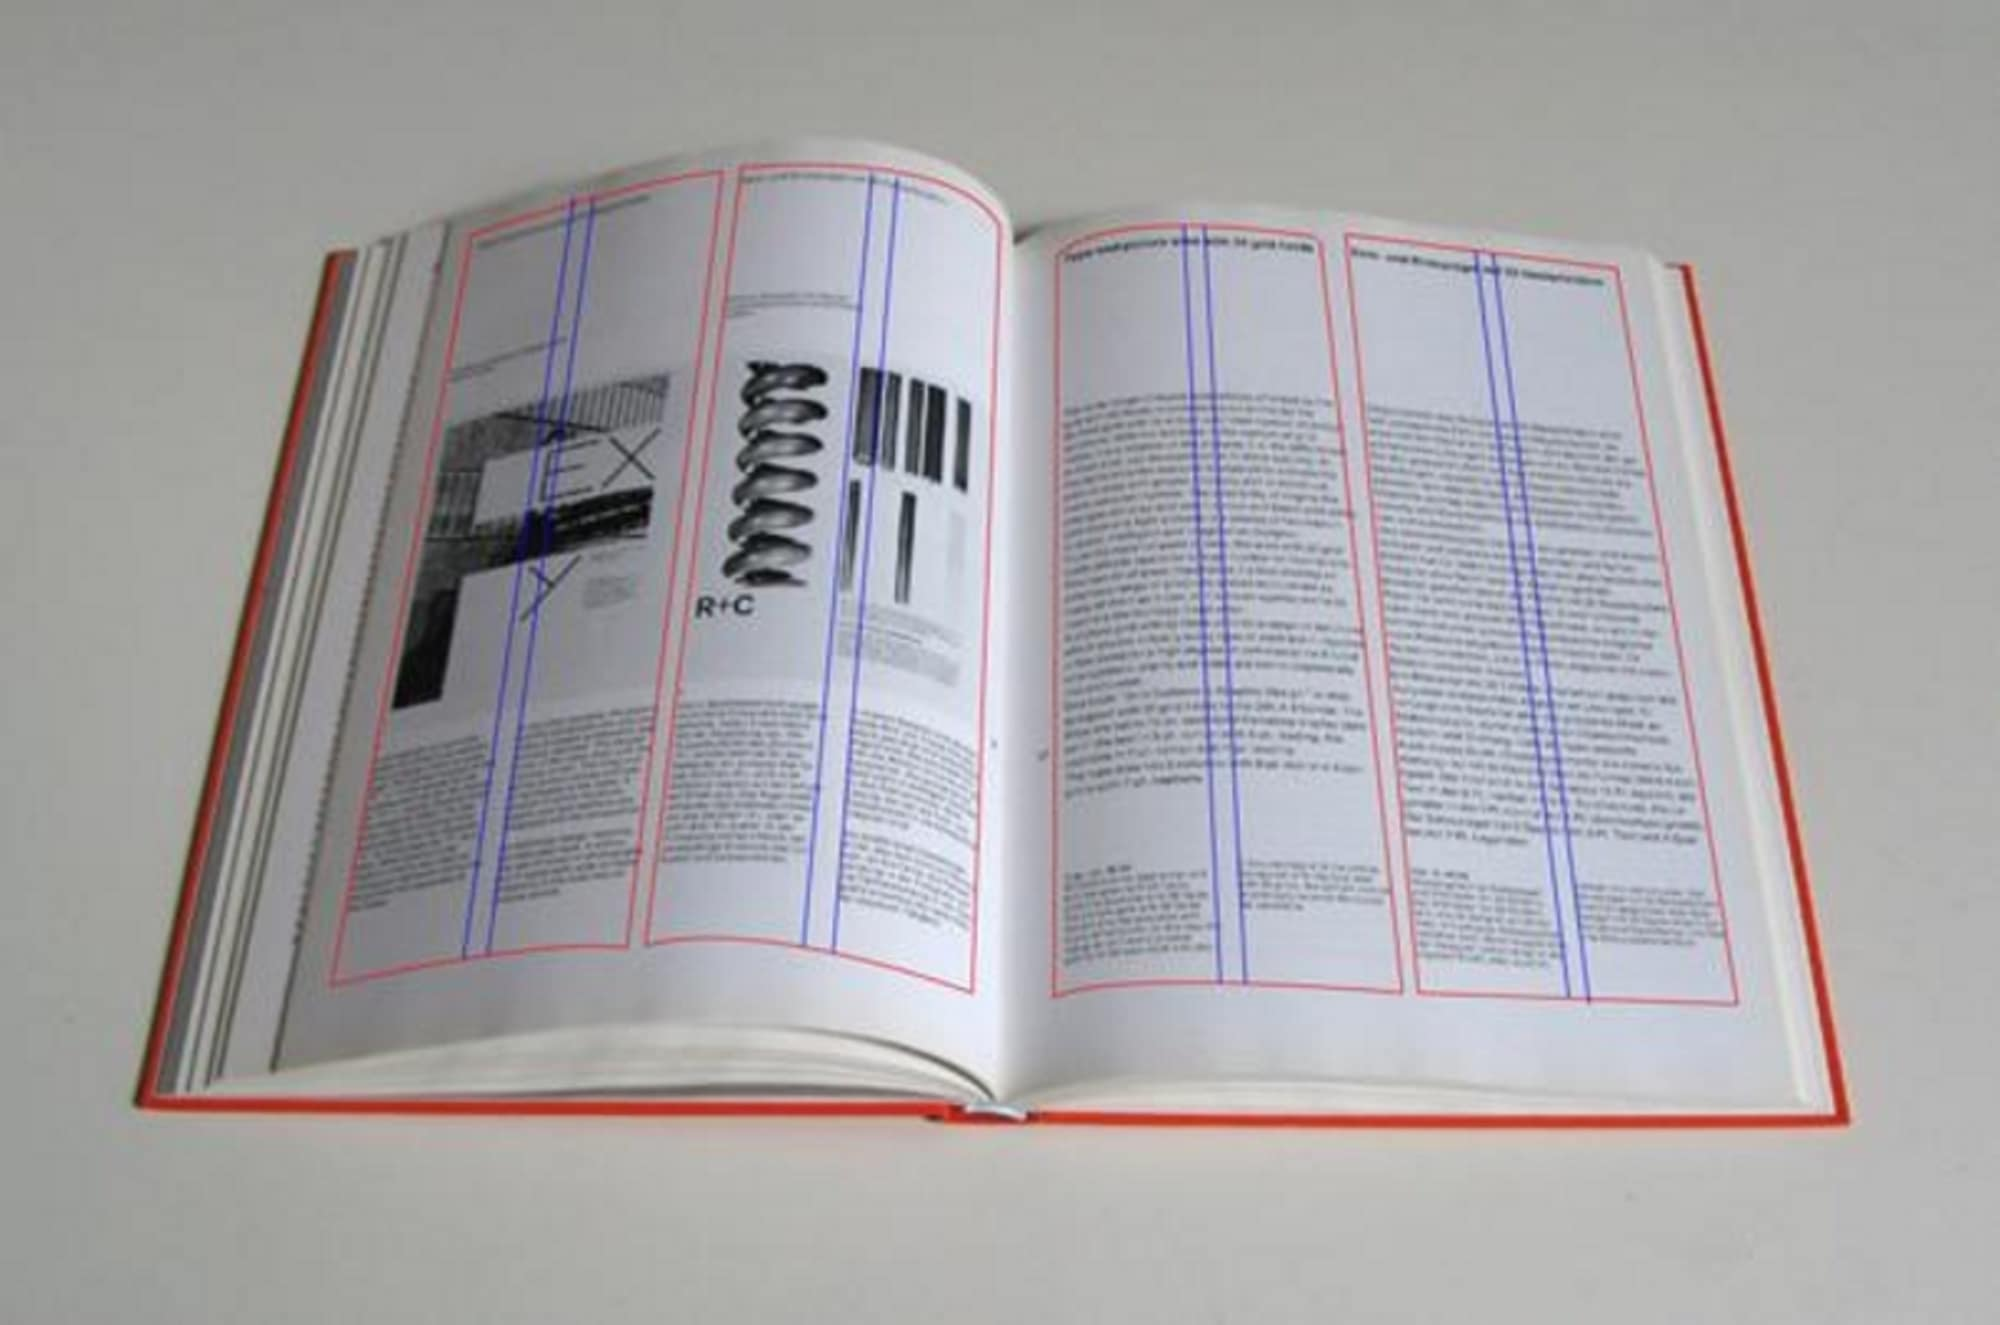 Image shows a grid on a book illustrating the pages and how it makes it easier for people to read